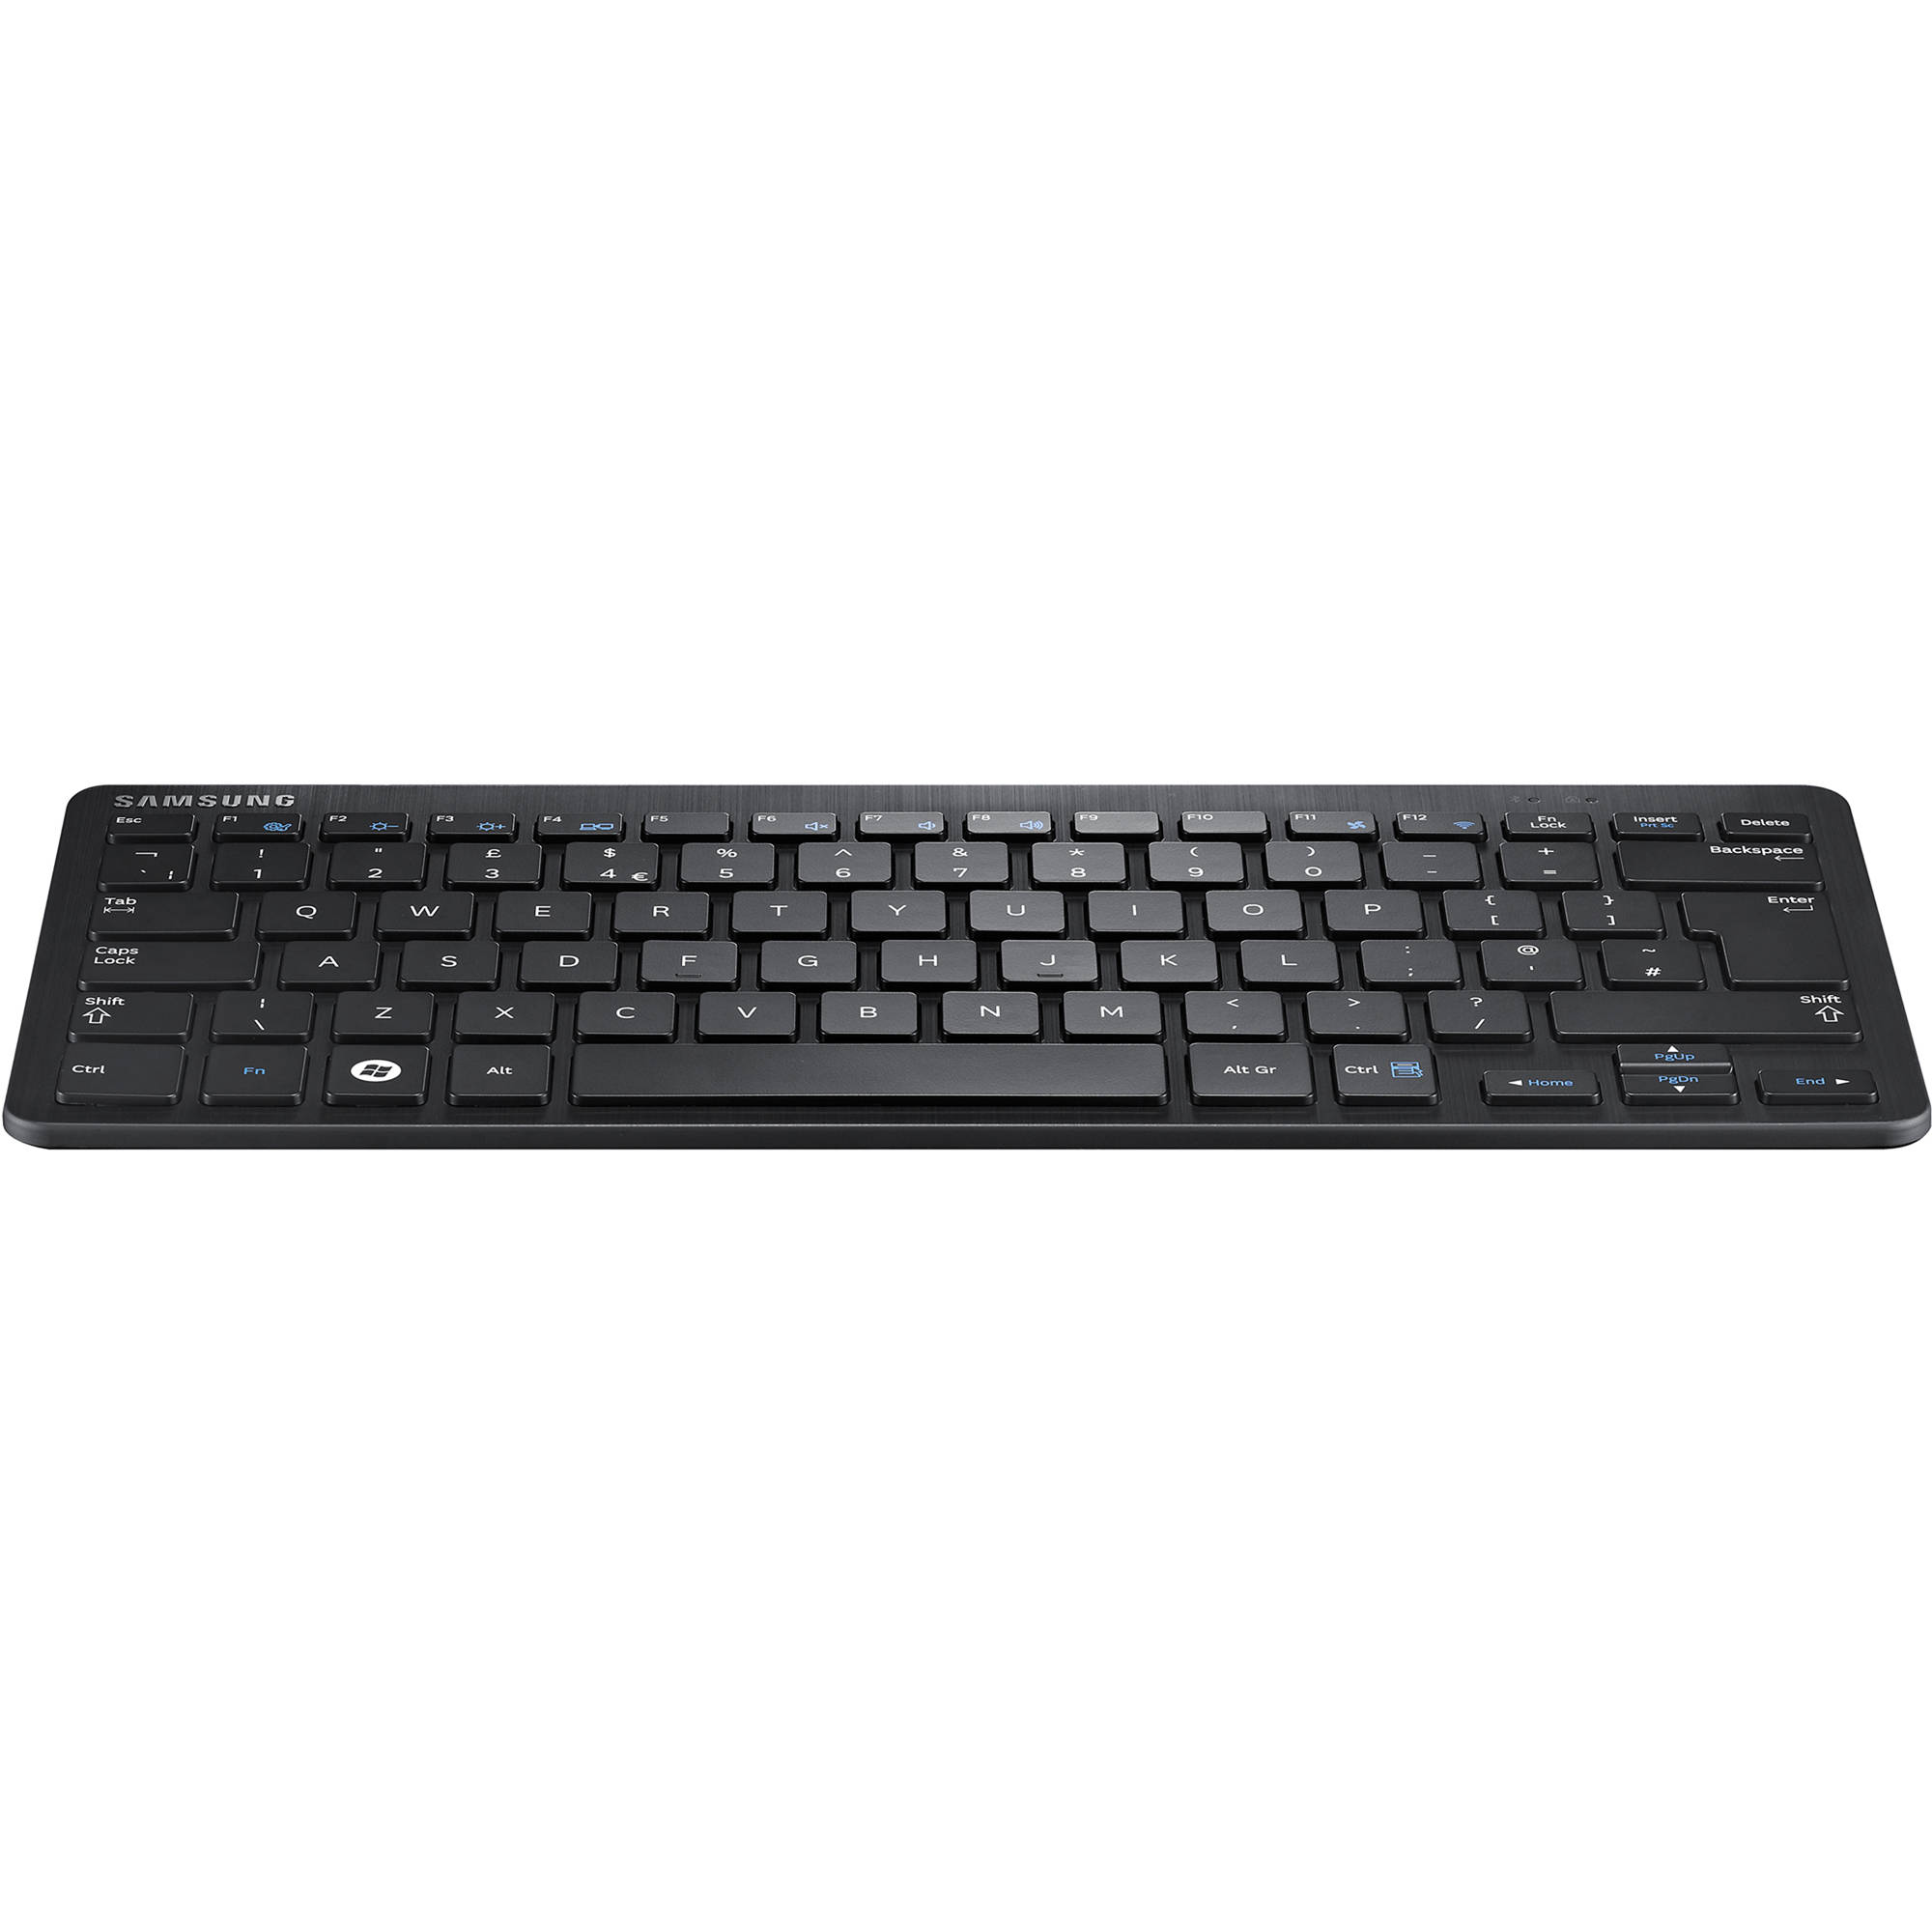 samsung compact wireless keyboard aa sk2nwbb us b h photo video. Black Bedroom Furniture Sets. Home Design Ideas